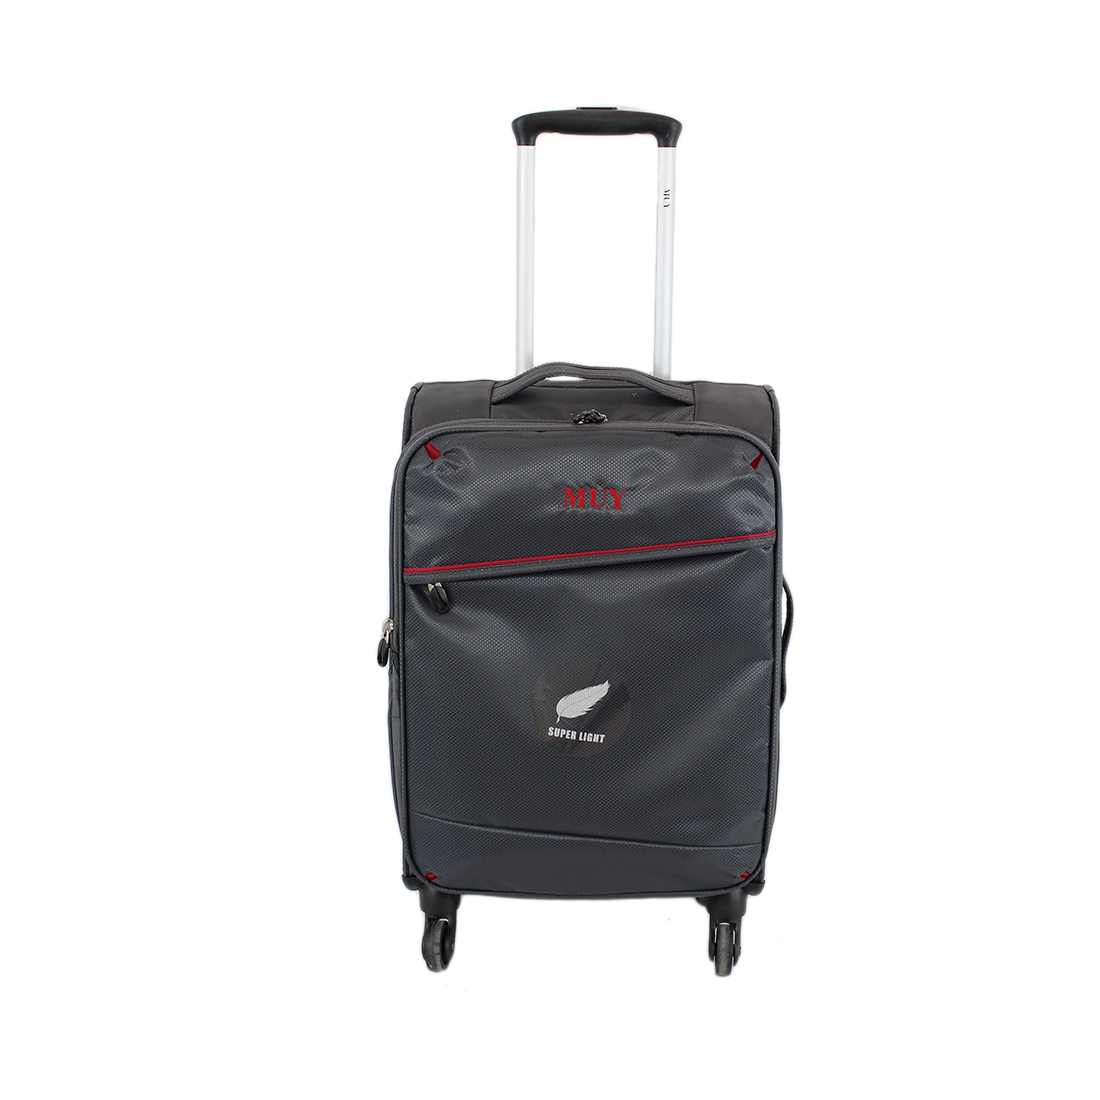 Soft-sided 4 wheels lightweight luggage